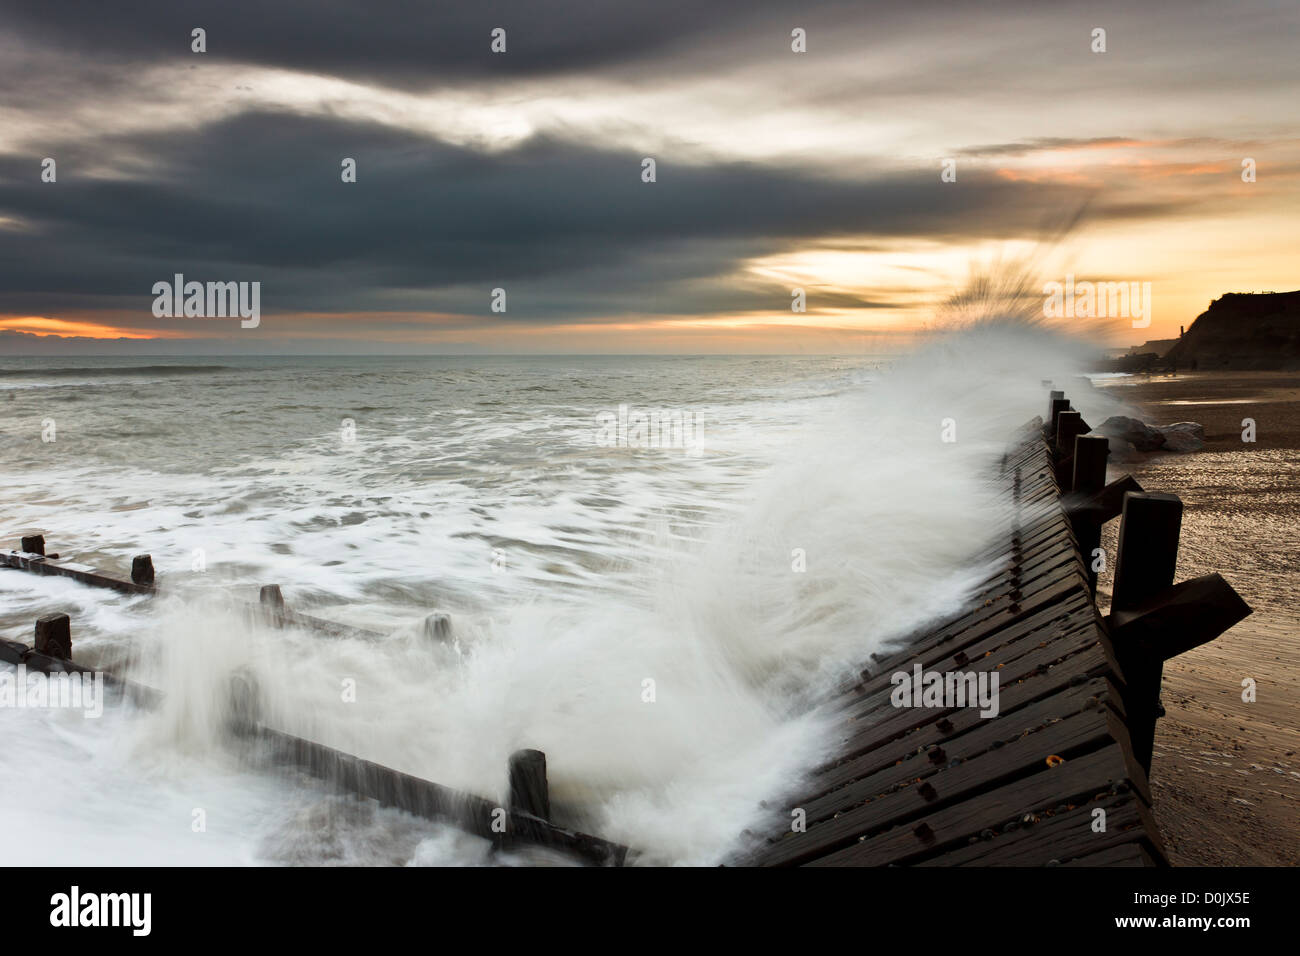 Sea Defences In The Uk Stock Photos Amp Sea Defences In The